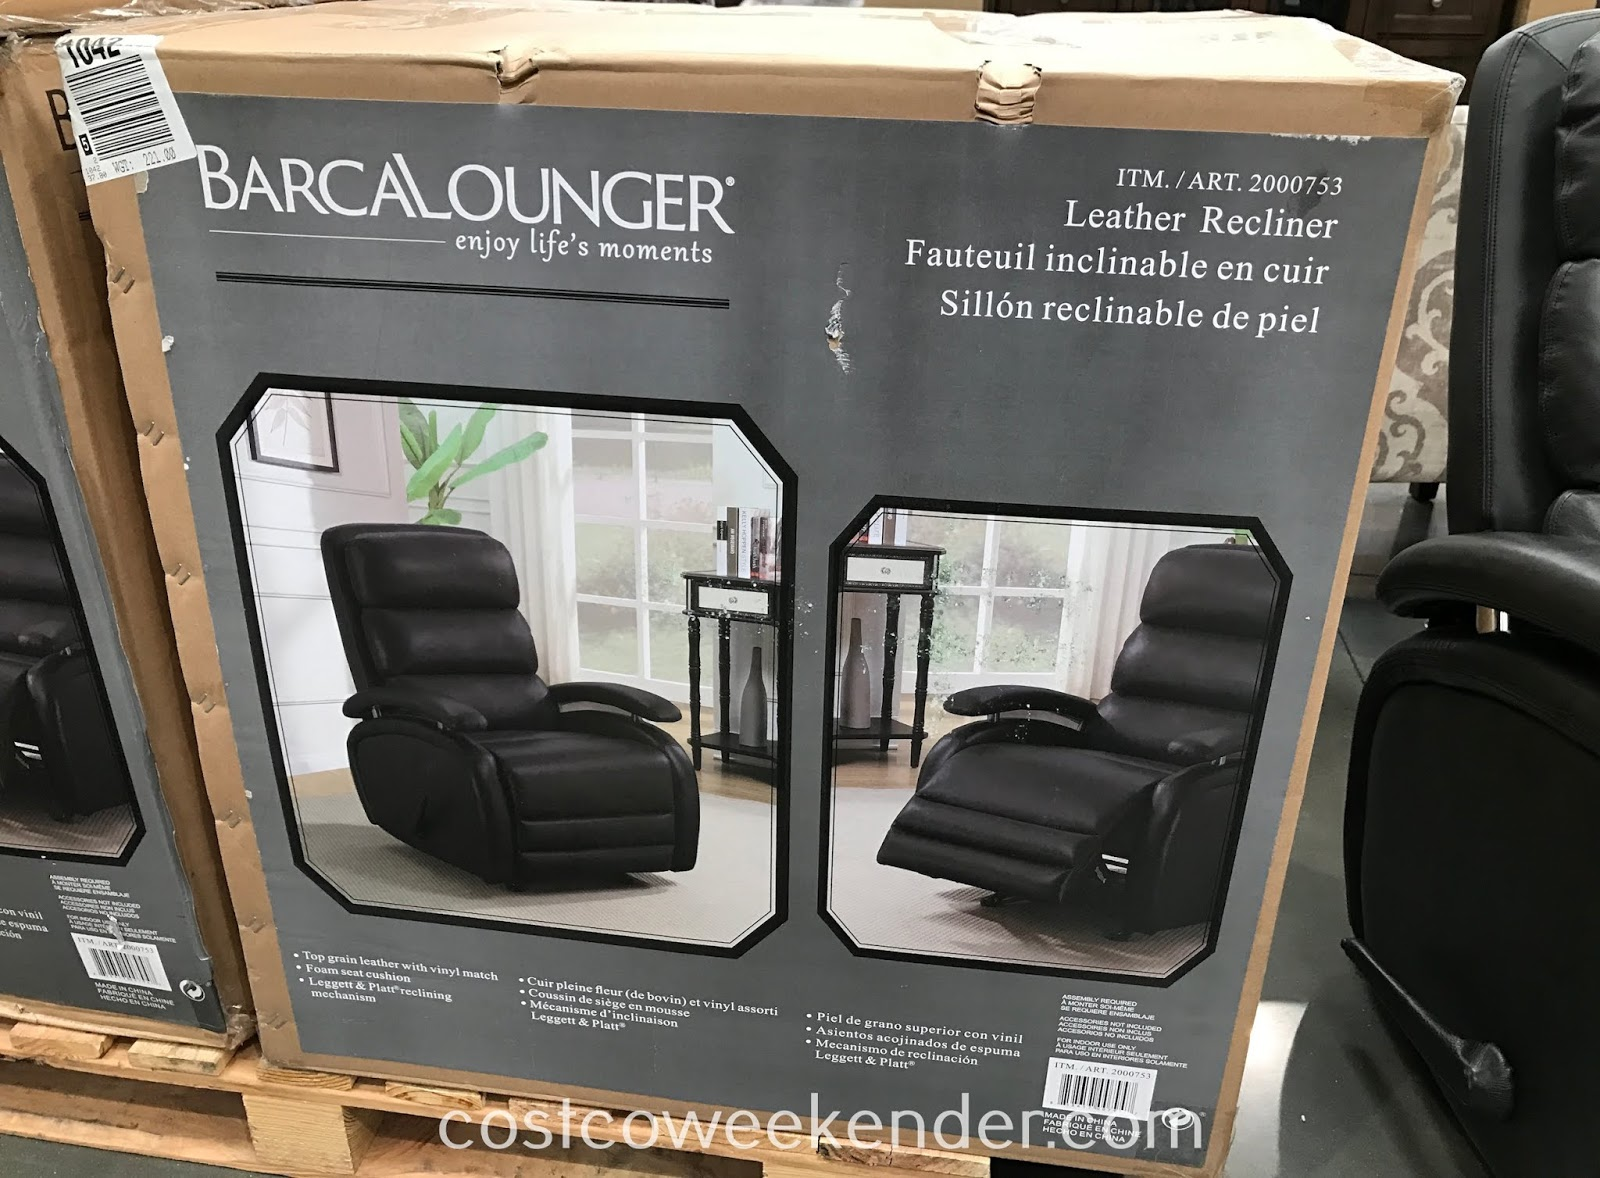 Barcalounger Leather Recliner: great for your living room or family room